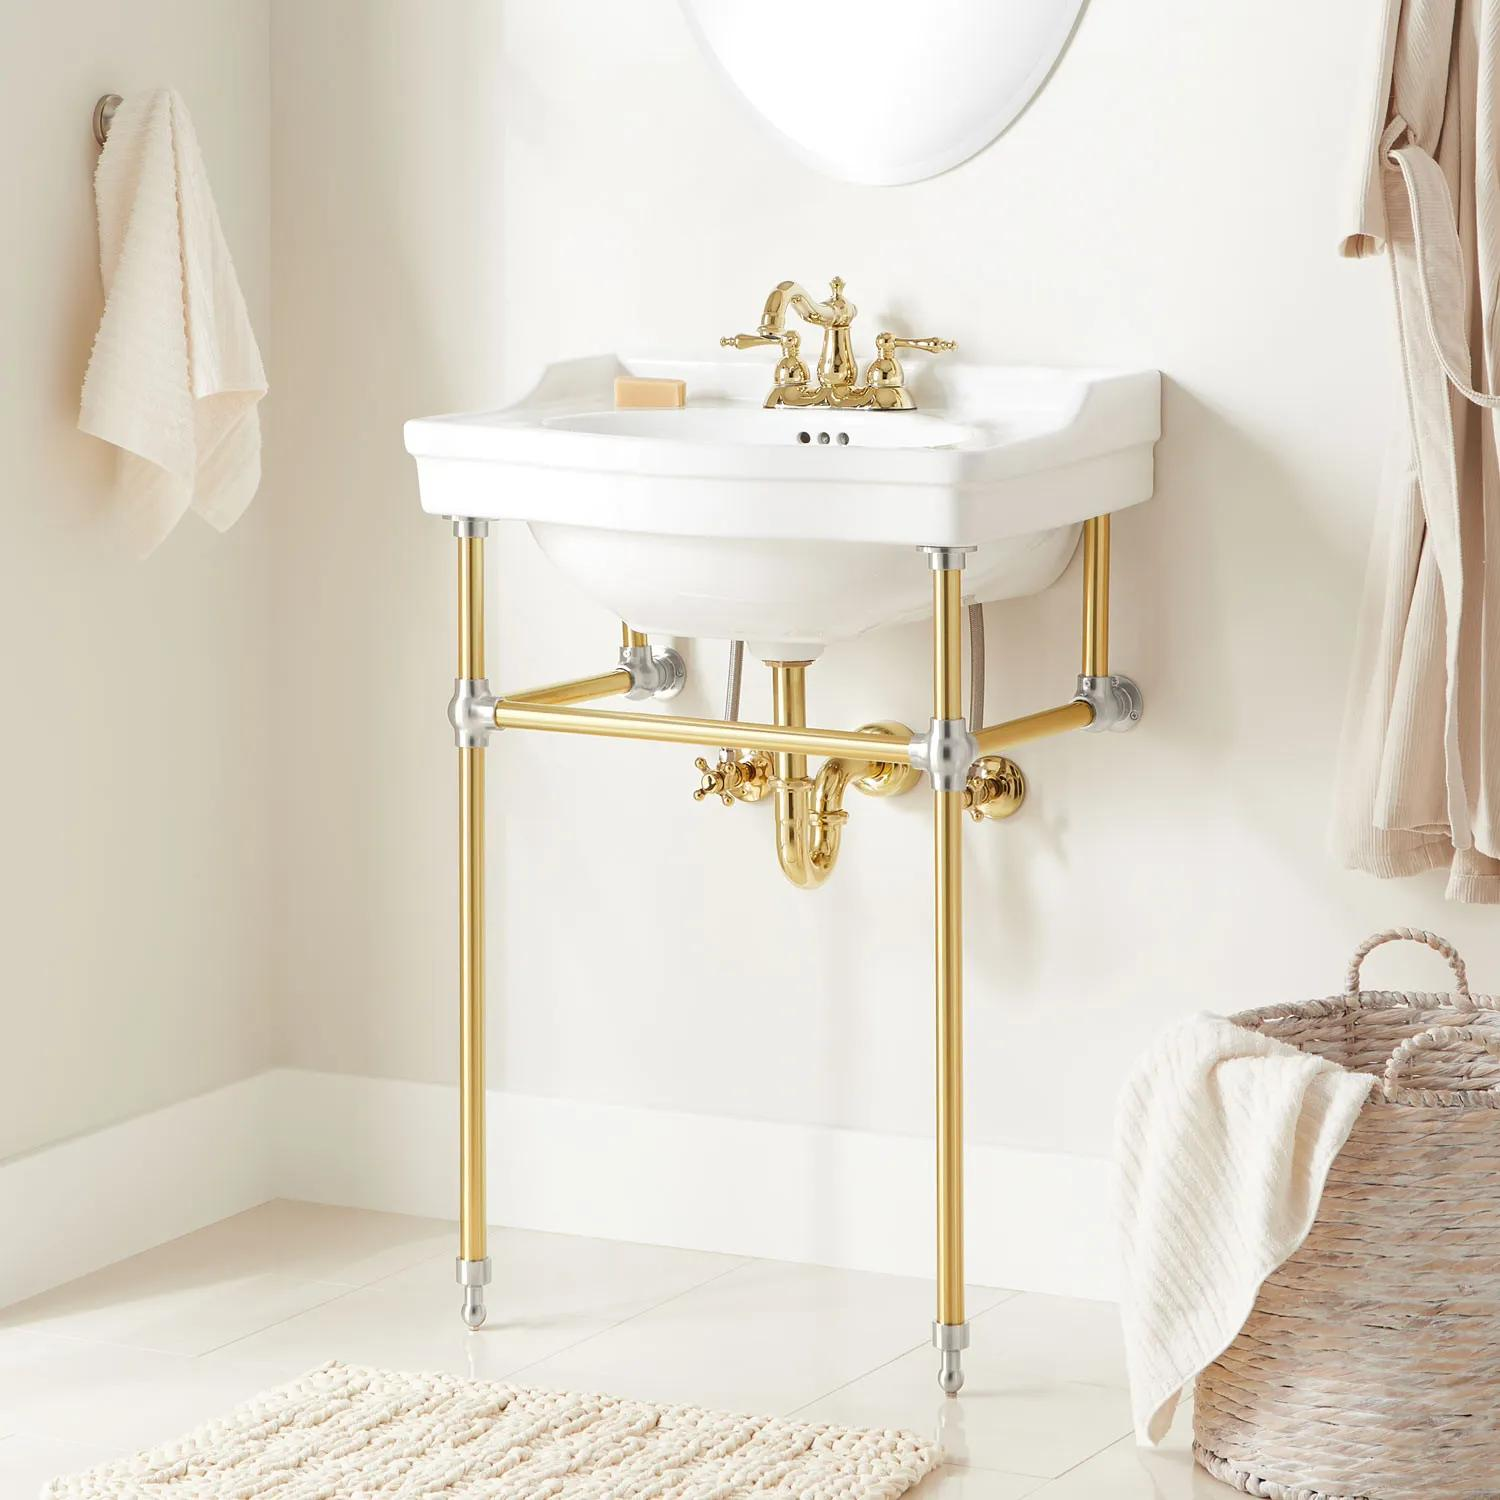 24 Cierra Porcelain Console Sink With Brass Stand Polished Brass Chrome Console Sinks Bathroom Sinks Sinks